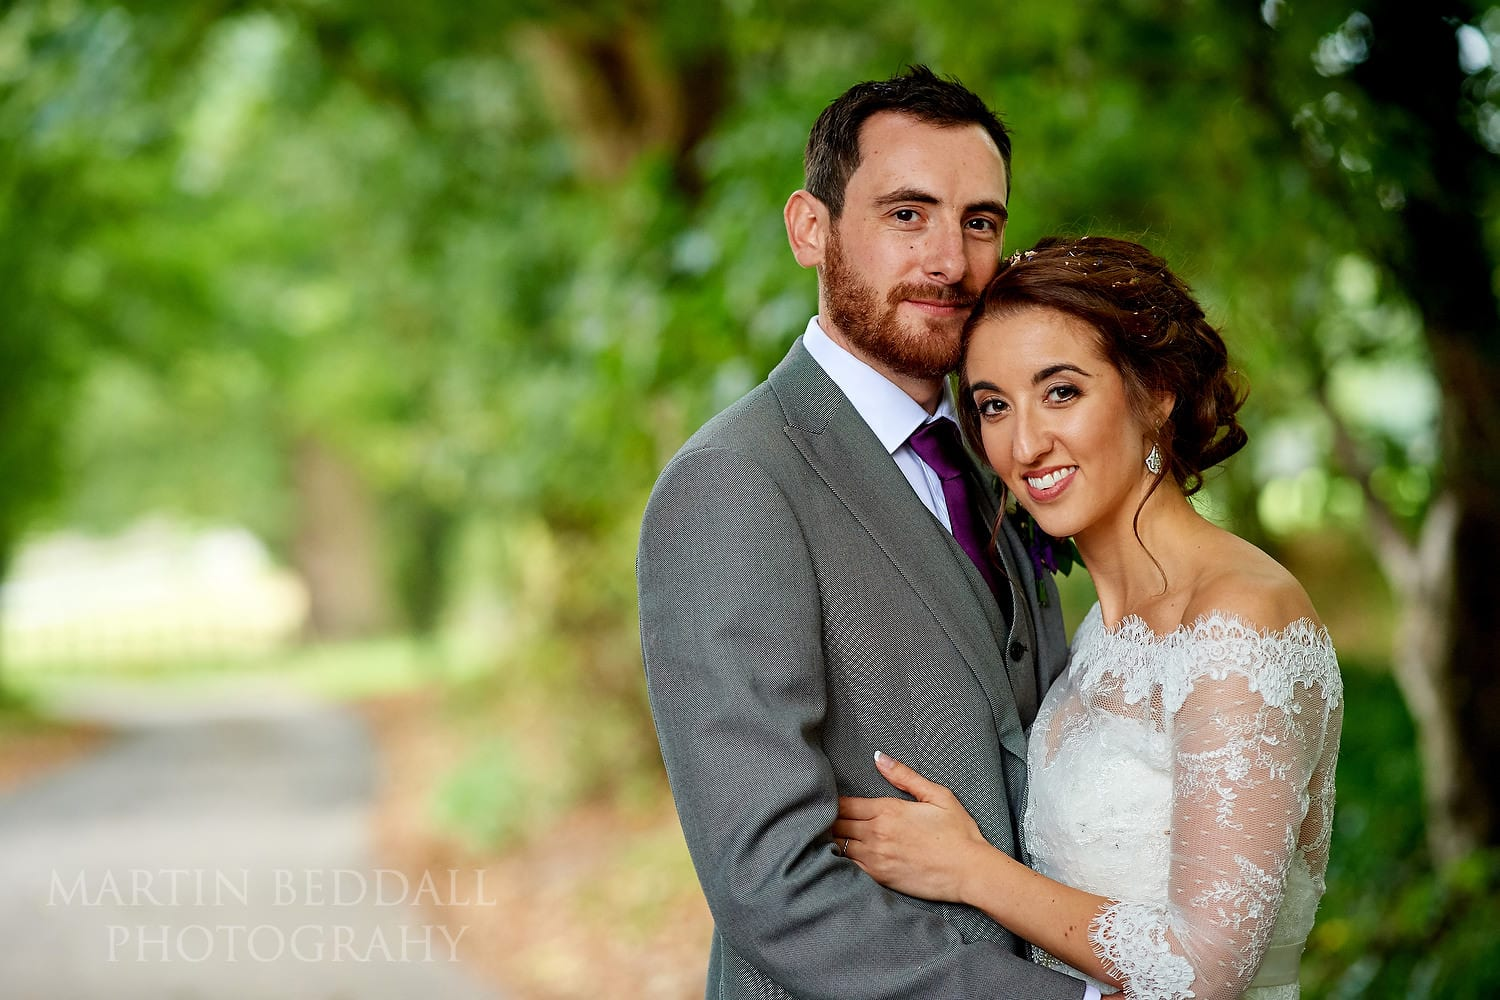 Quick couple portrait before the rain at Burley Manor wedding